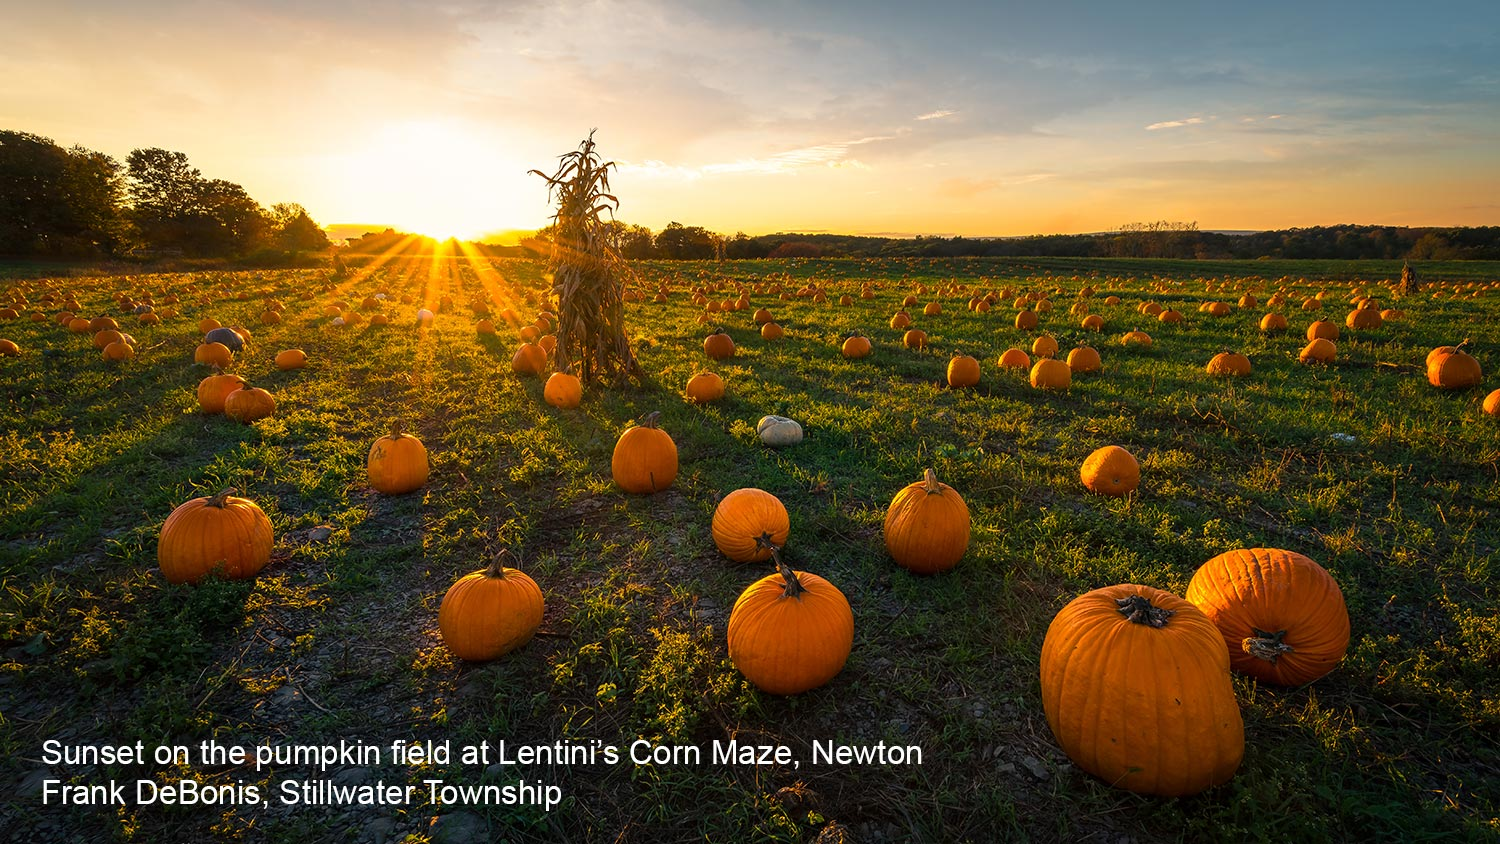 Sunset on the Pumpkin Field at Lentini's Corn Maze